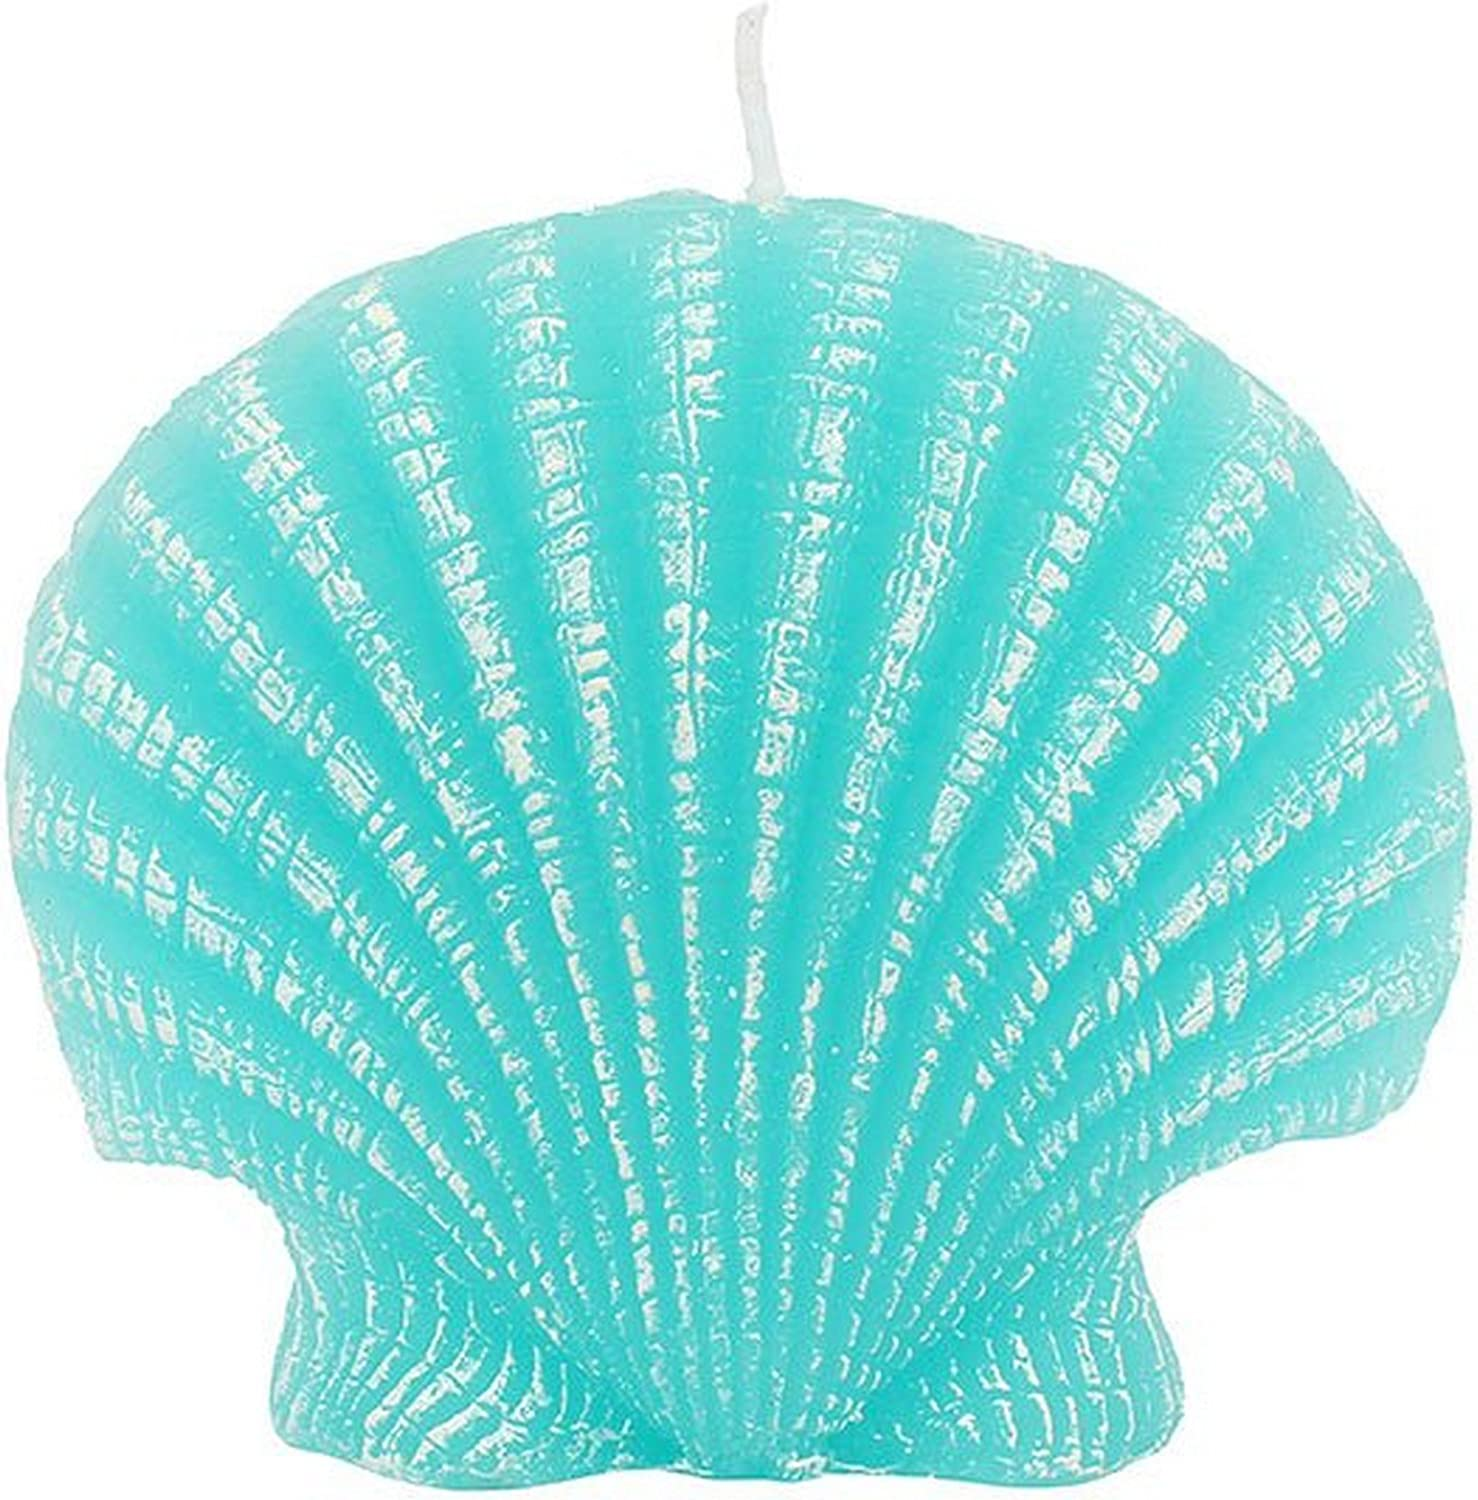 Turquoise Clam Shell Candle